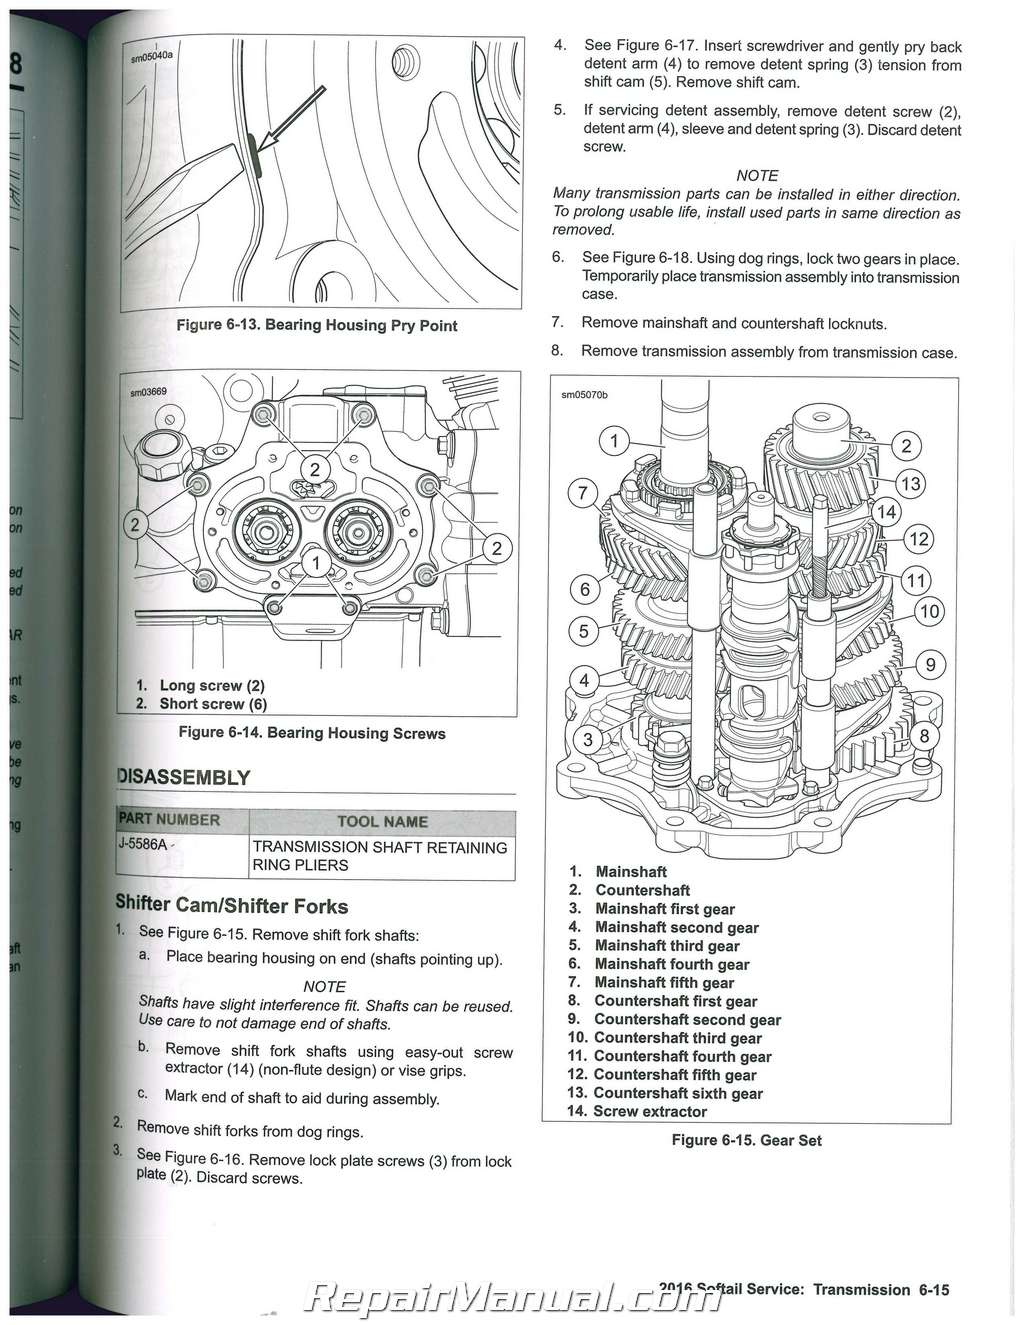 Harley Davidson Wiring Diagram Manual